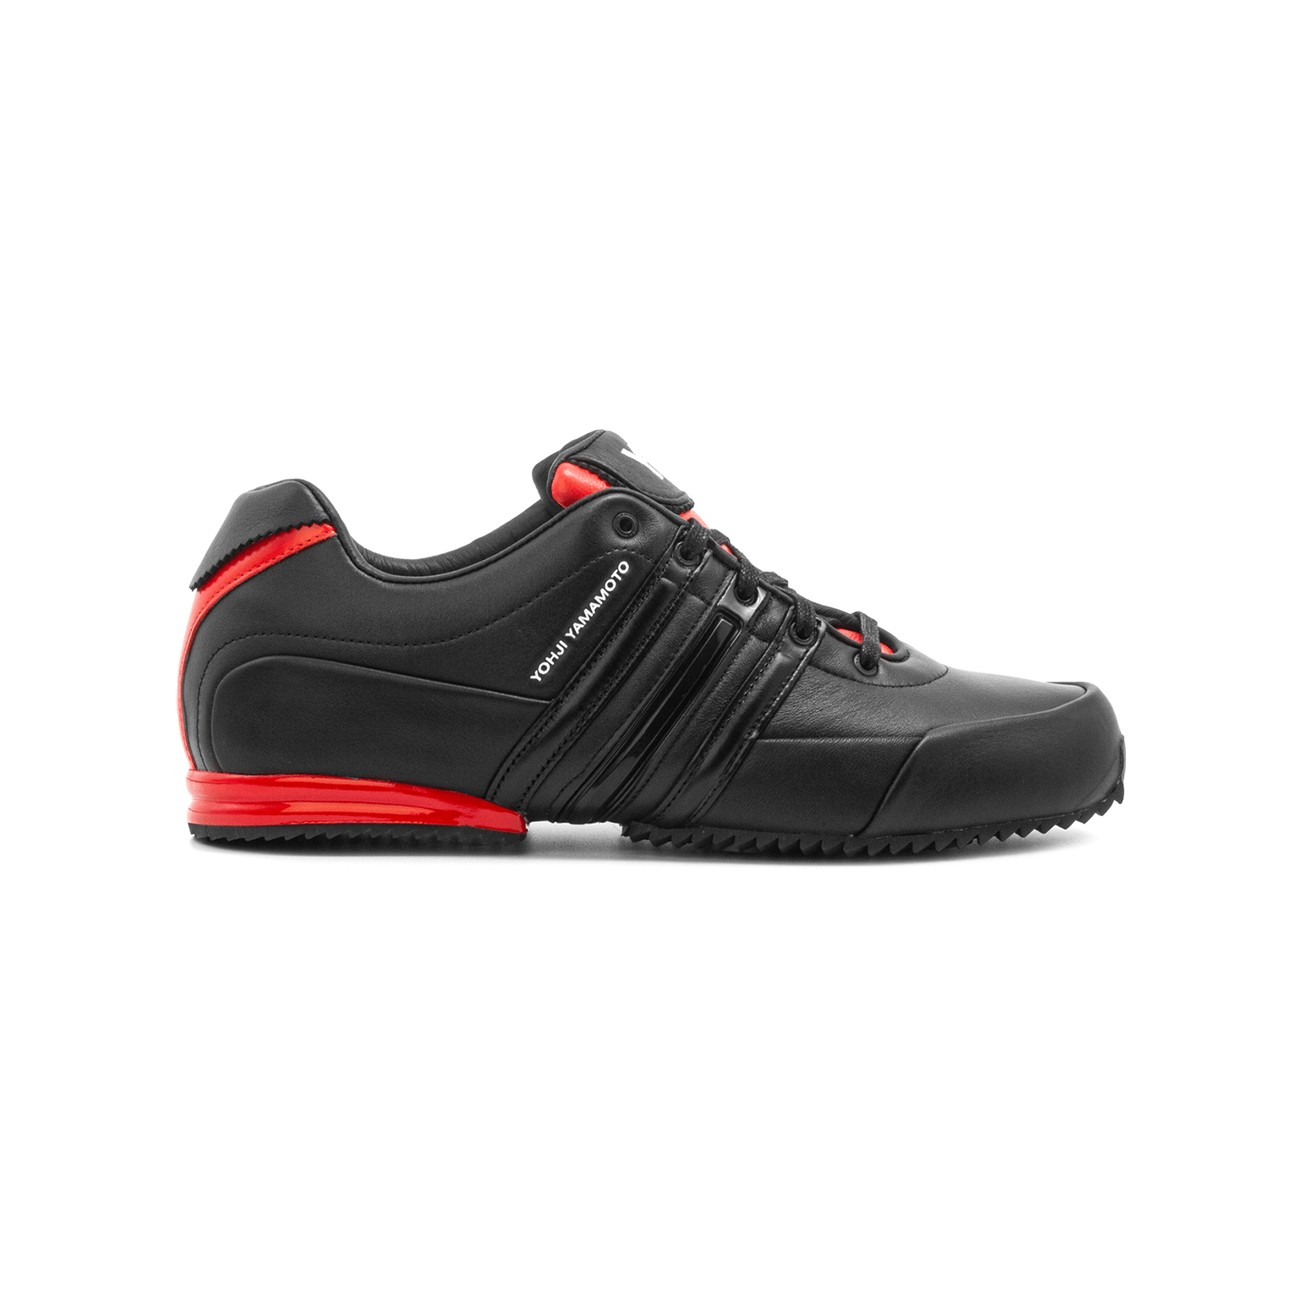 BLACK SPRINT SNEAKERS RED DETAILS Y-3 FY5930